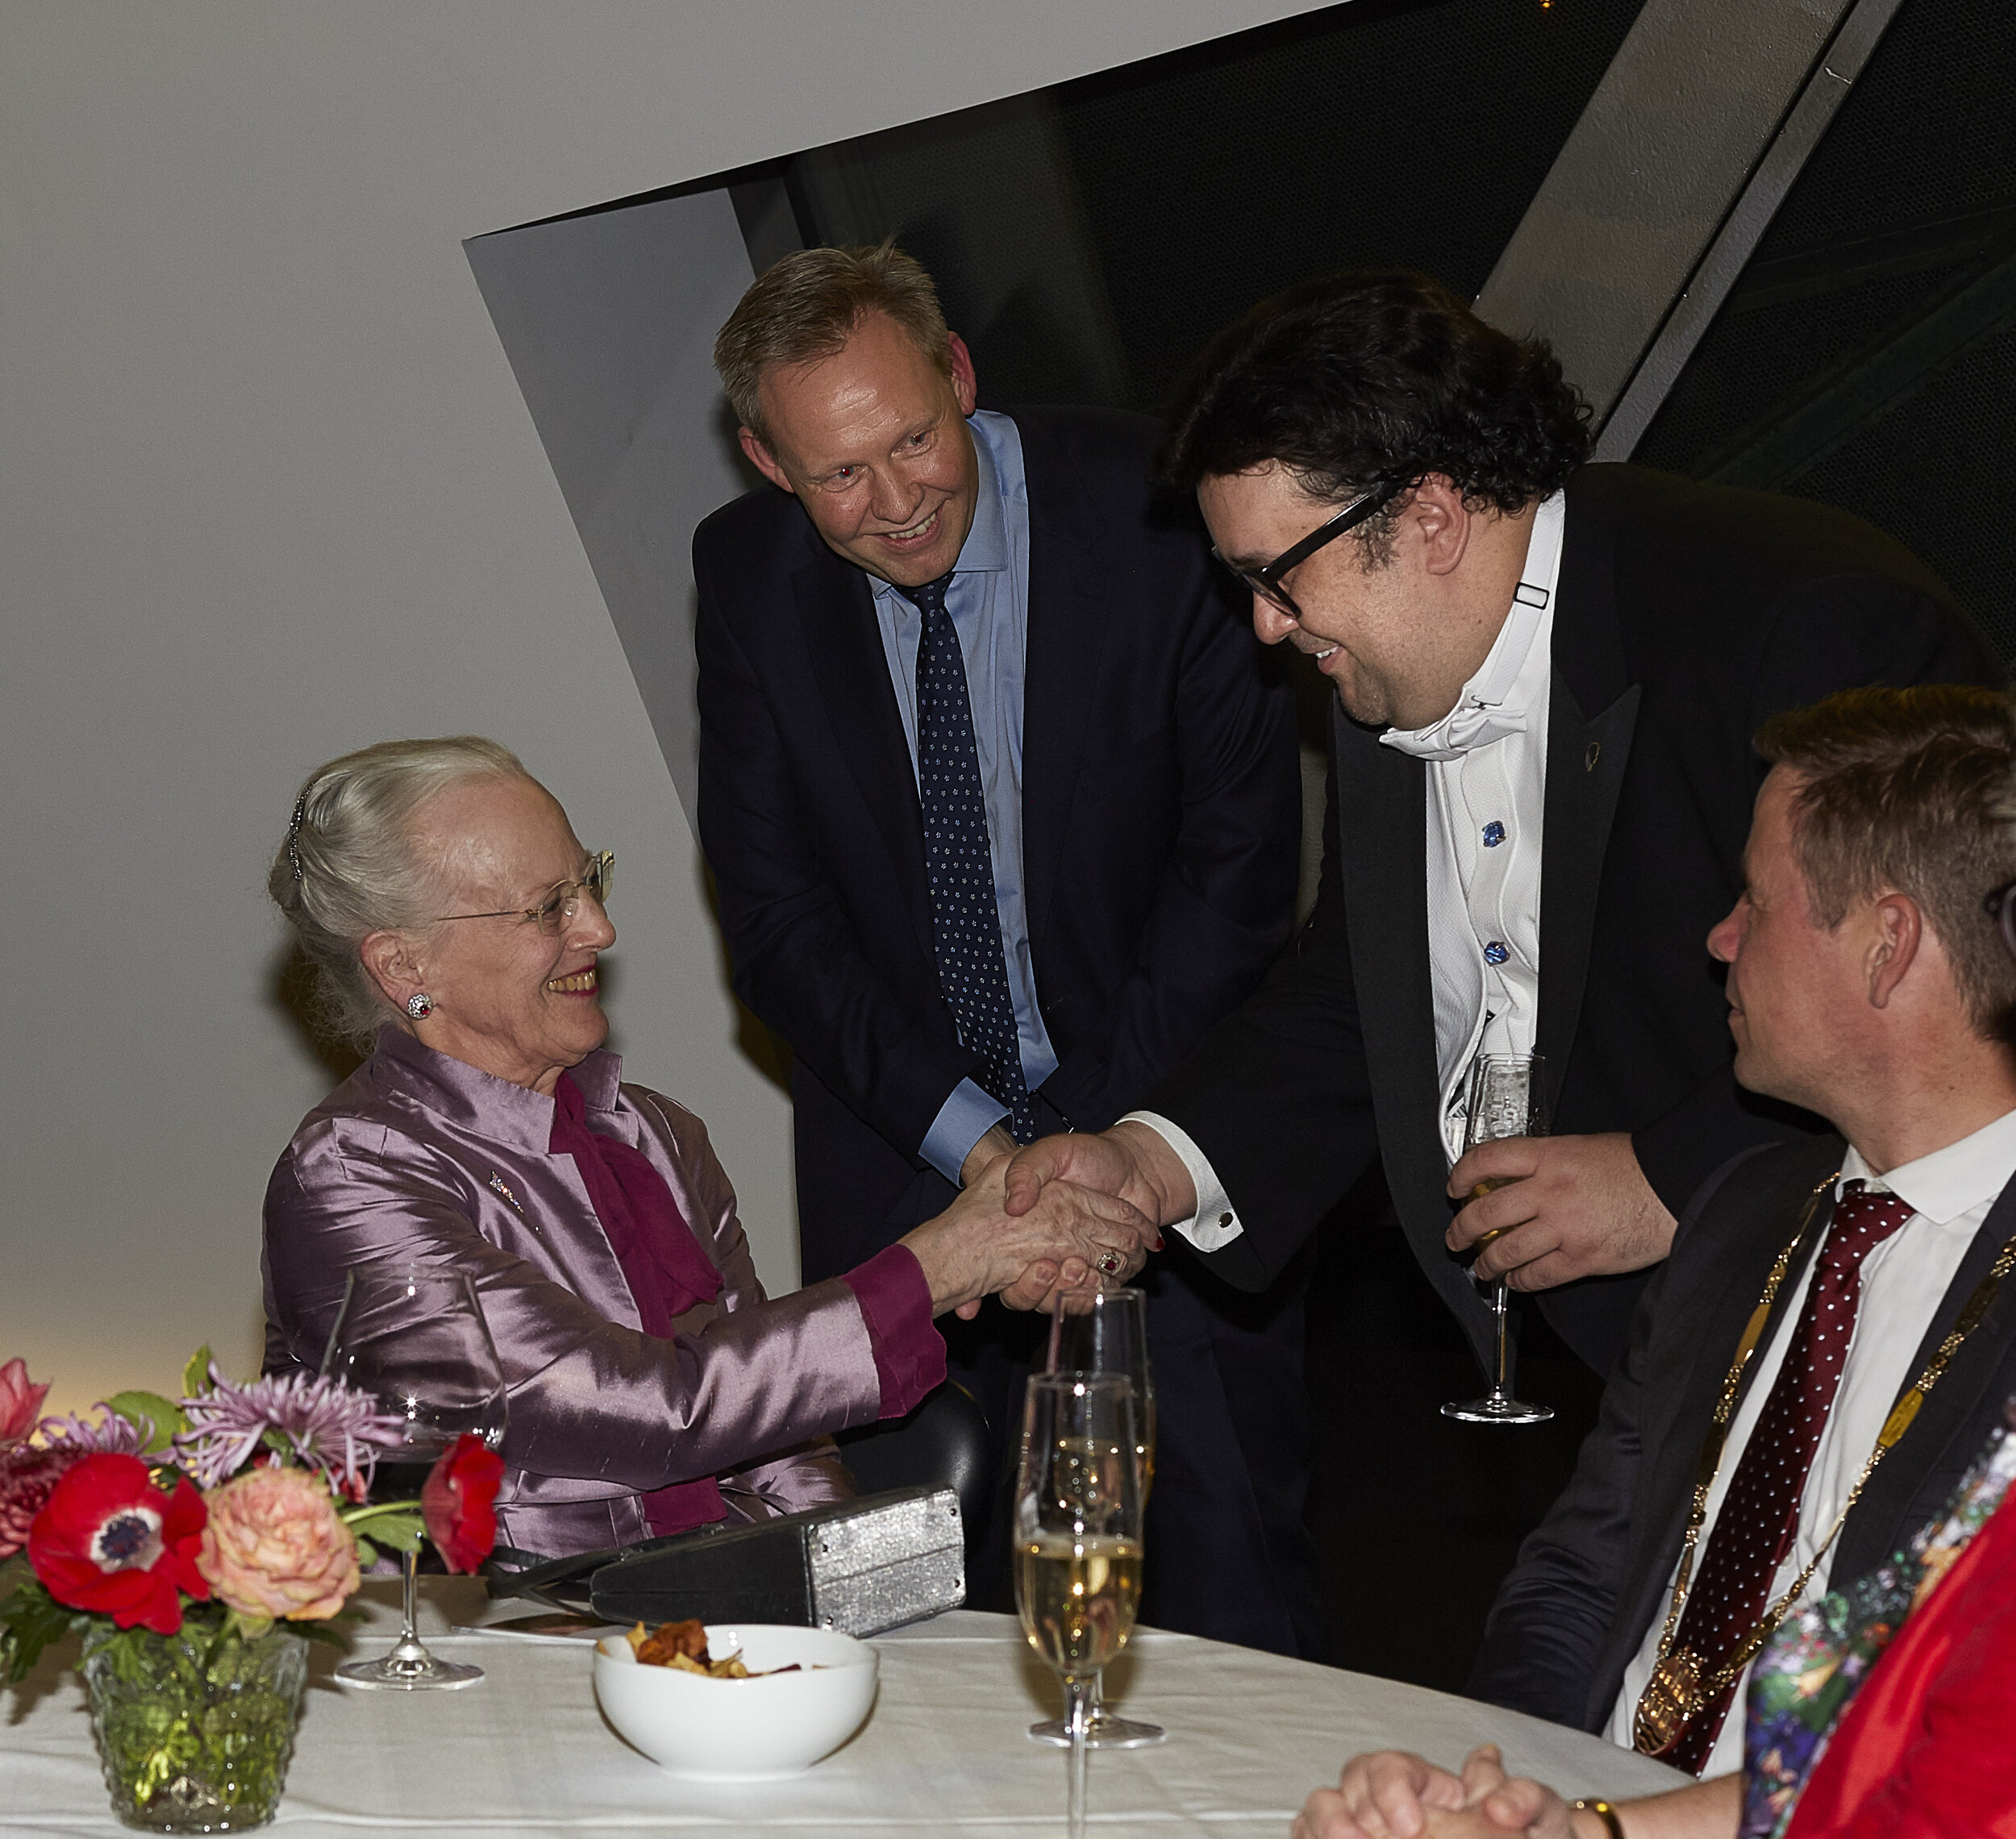 Meeting Her Majesty Queen Margrethe II of Denmark after the Finals of the 2017 Lauritz Melchior International Singing Competition.